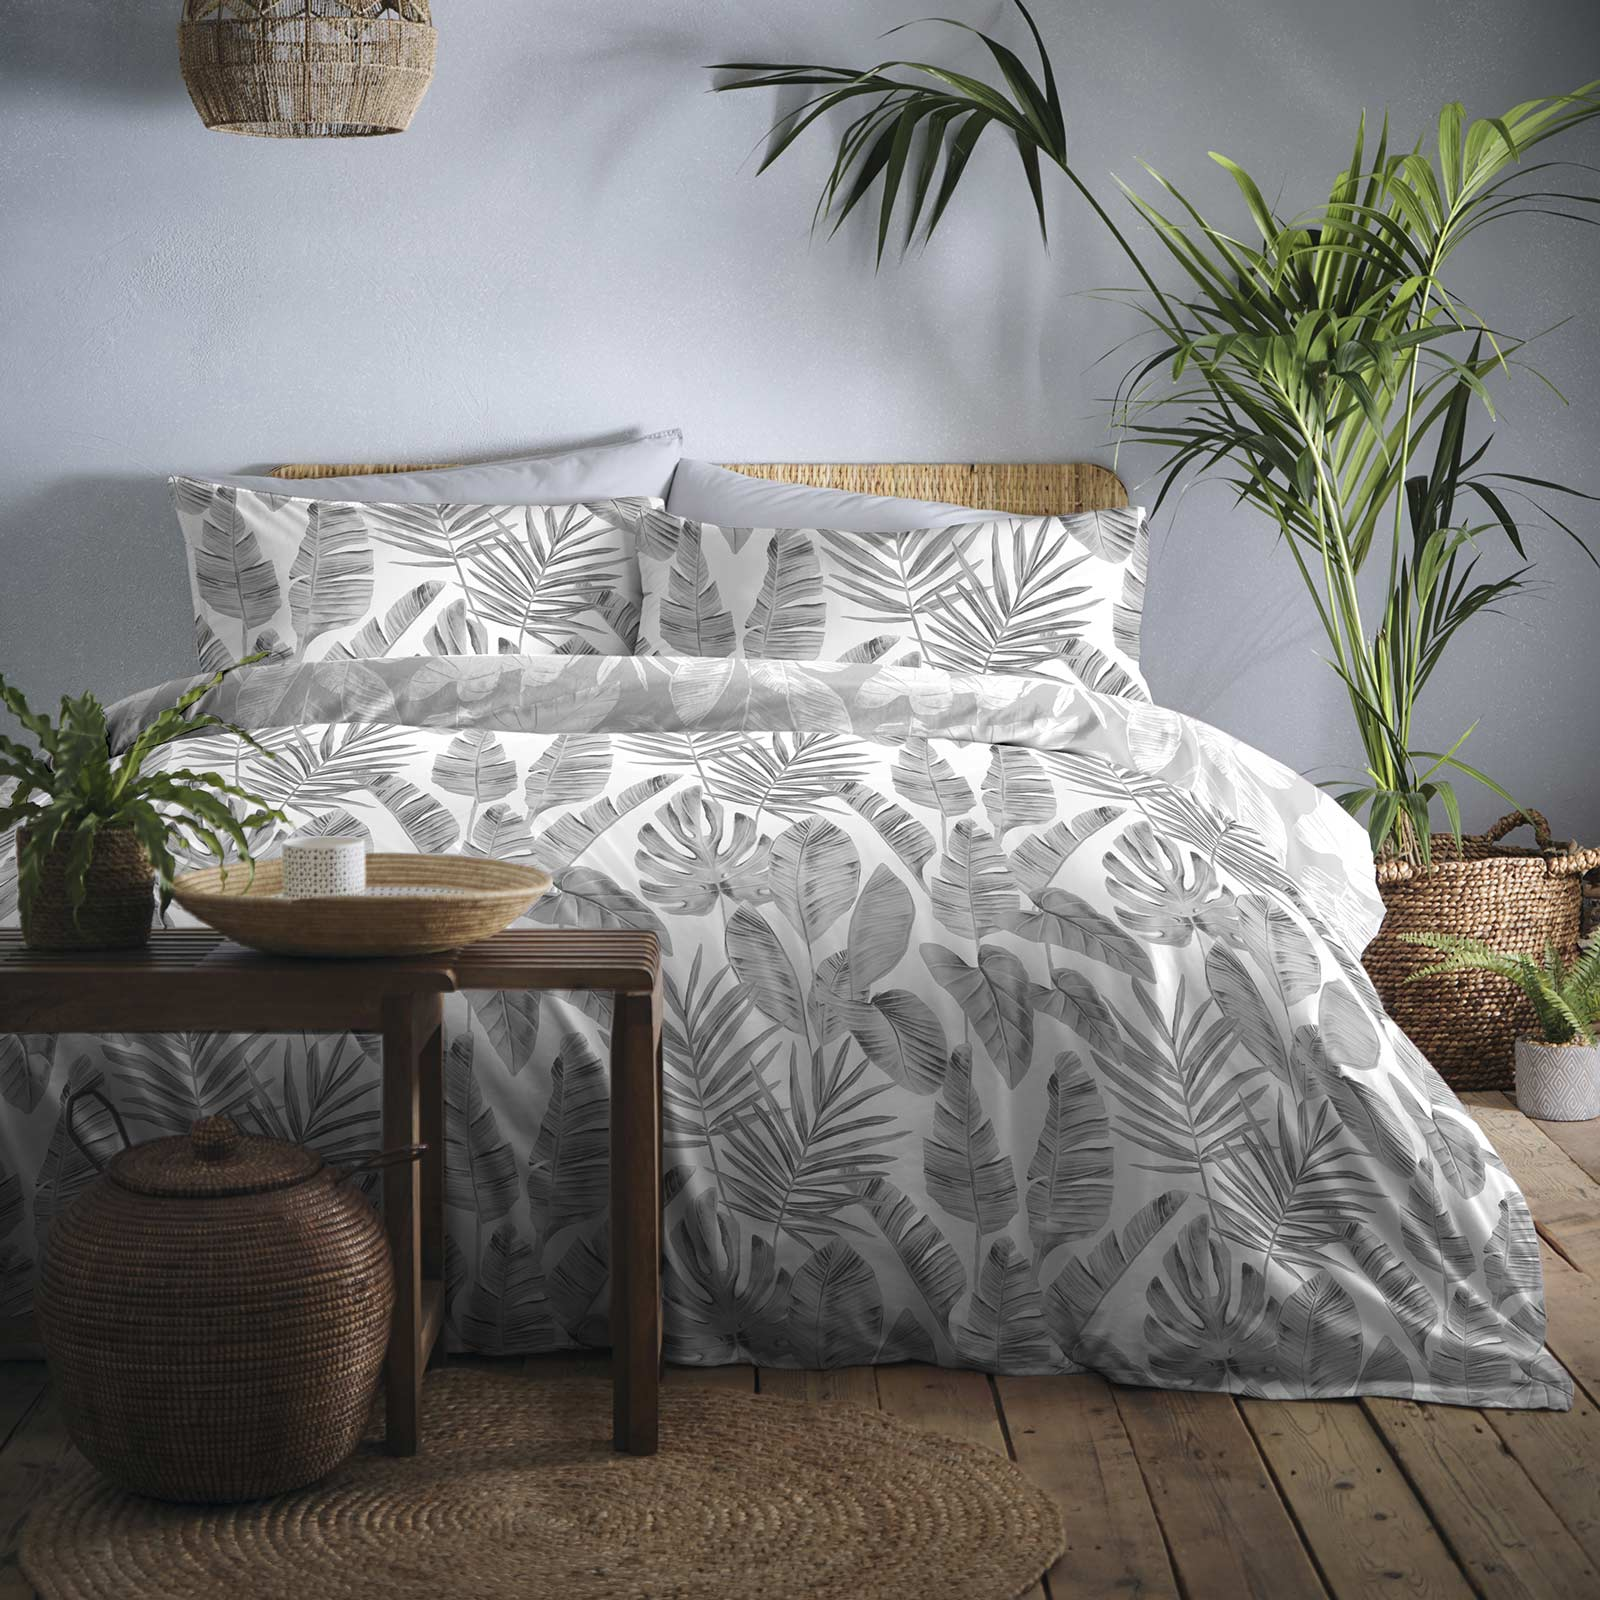 Tahiti Tropical Palm Leaf Print Grey Duvet Cover Set - Single - Ideal Textiles